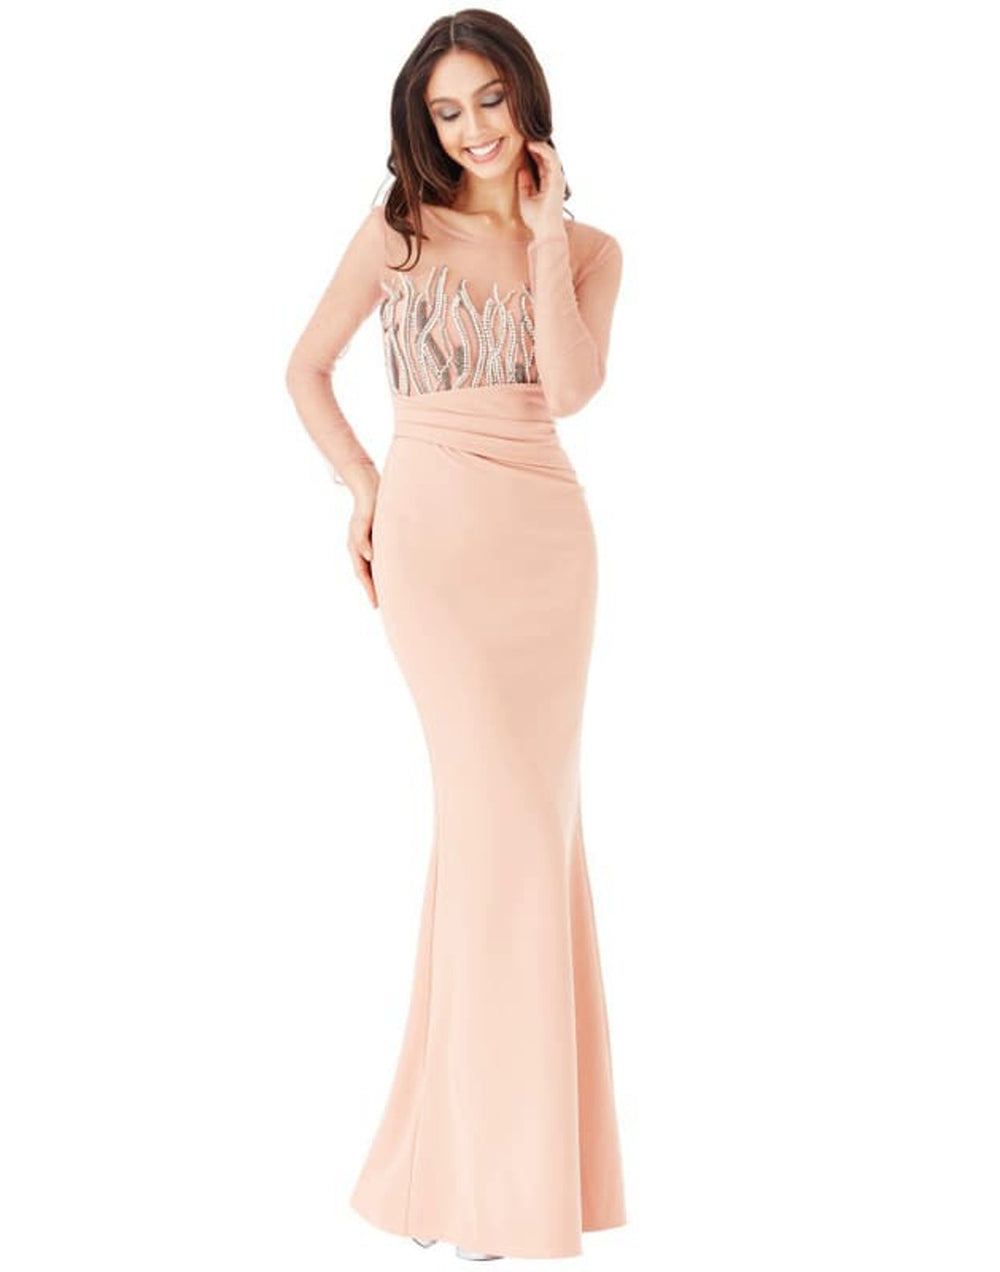 Long Sleeved Embellished Maxi Dress -  UK 10 Dresses Blush Colour dress bodycon dress bodycon dress with fish tail bodycon dresses bodycon maxi